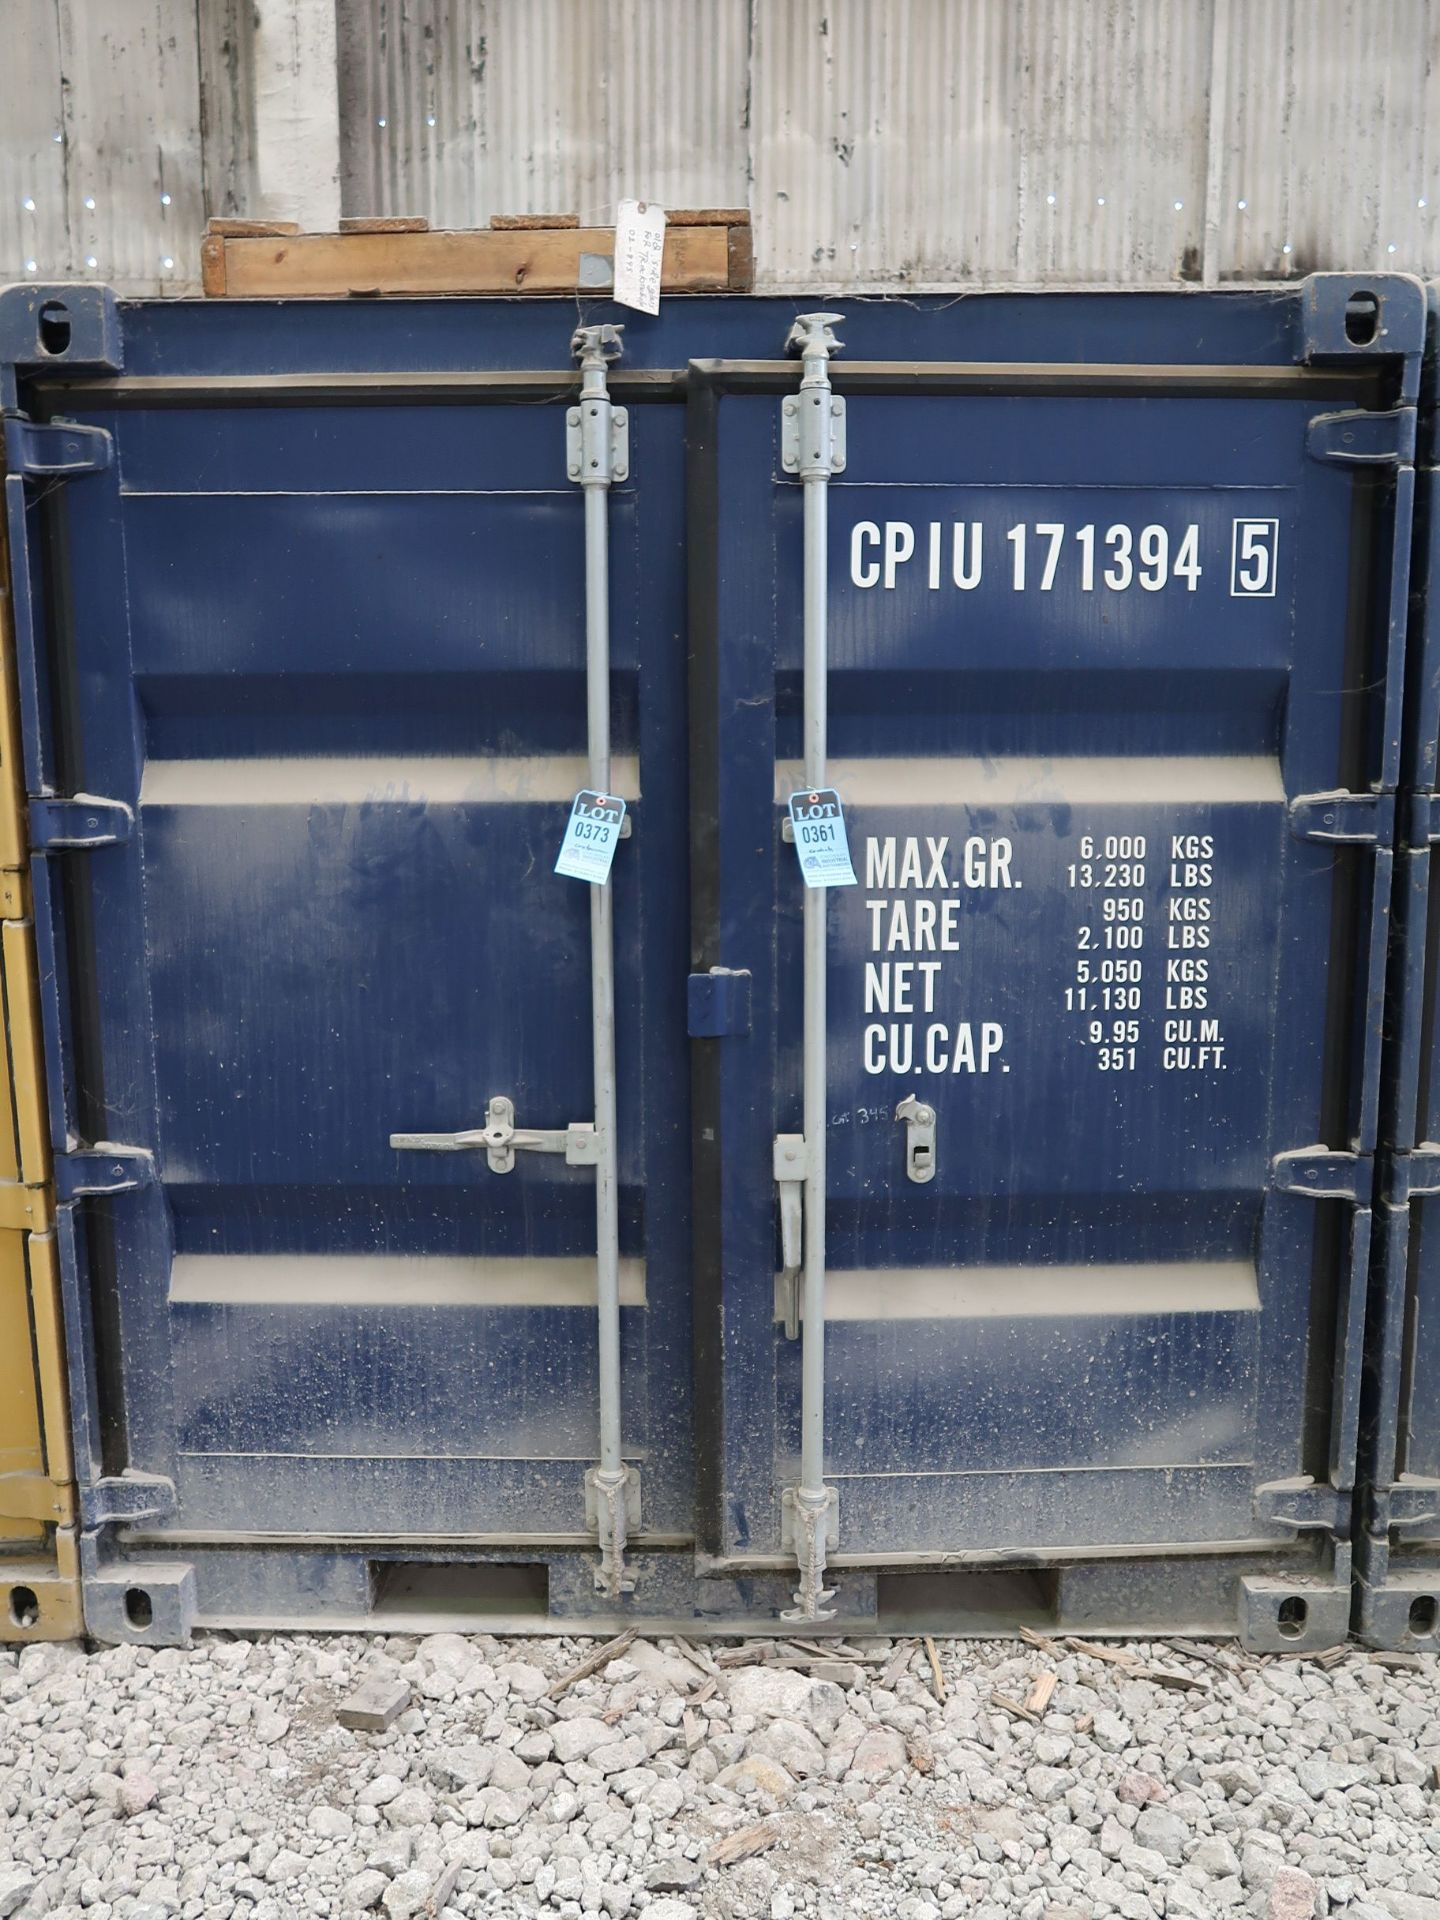 Lot 373 - 7' WIDE X 8' LONG CONTAINER PROVIDER INTL CONEX STORAGE CONTAINER WITH STANDARD DOOR, 351 CU. FT.